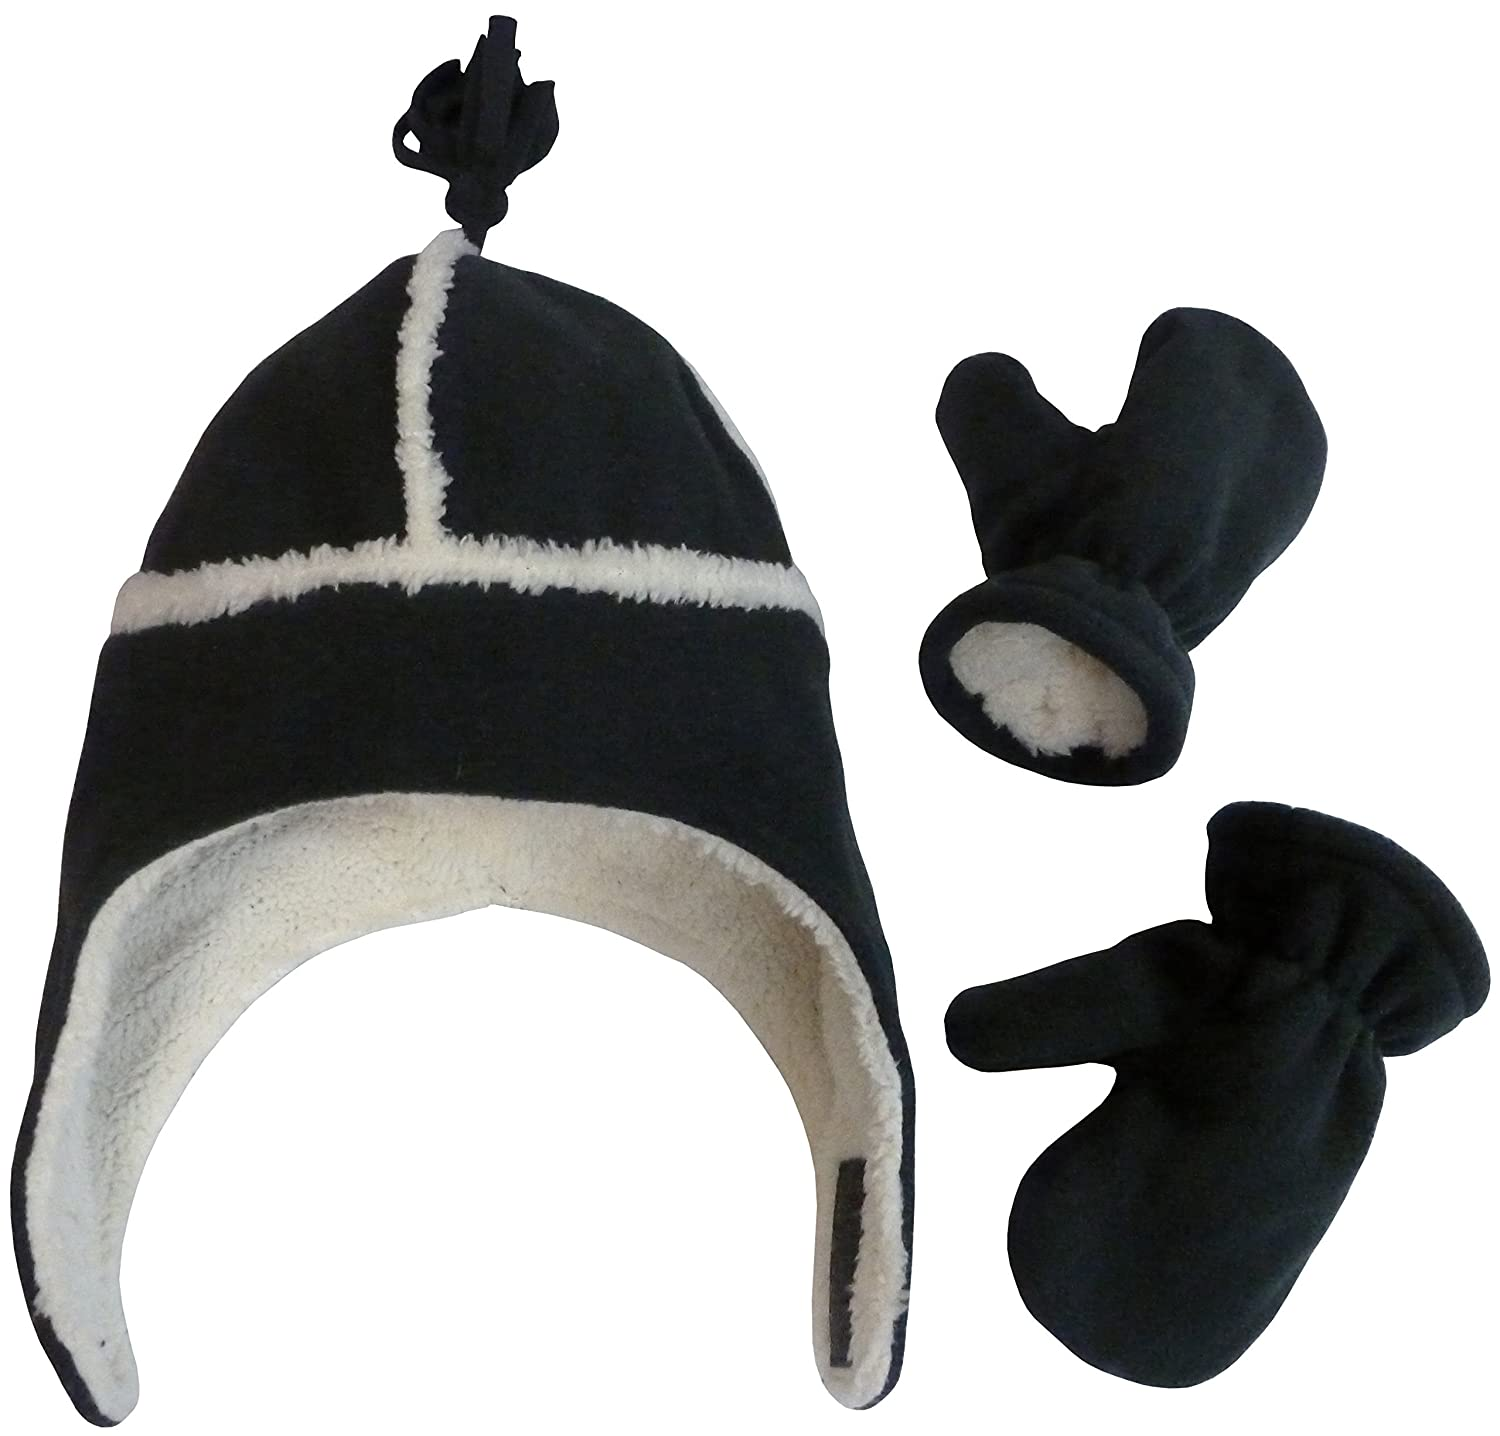 6c97757a7b8 Amazon.com  N Ice Caps Little Kids and Baby Reversed Sherpa Fleece Hat  Mitten Winter Set  Clothing